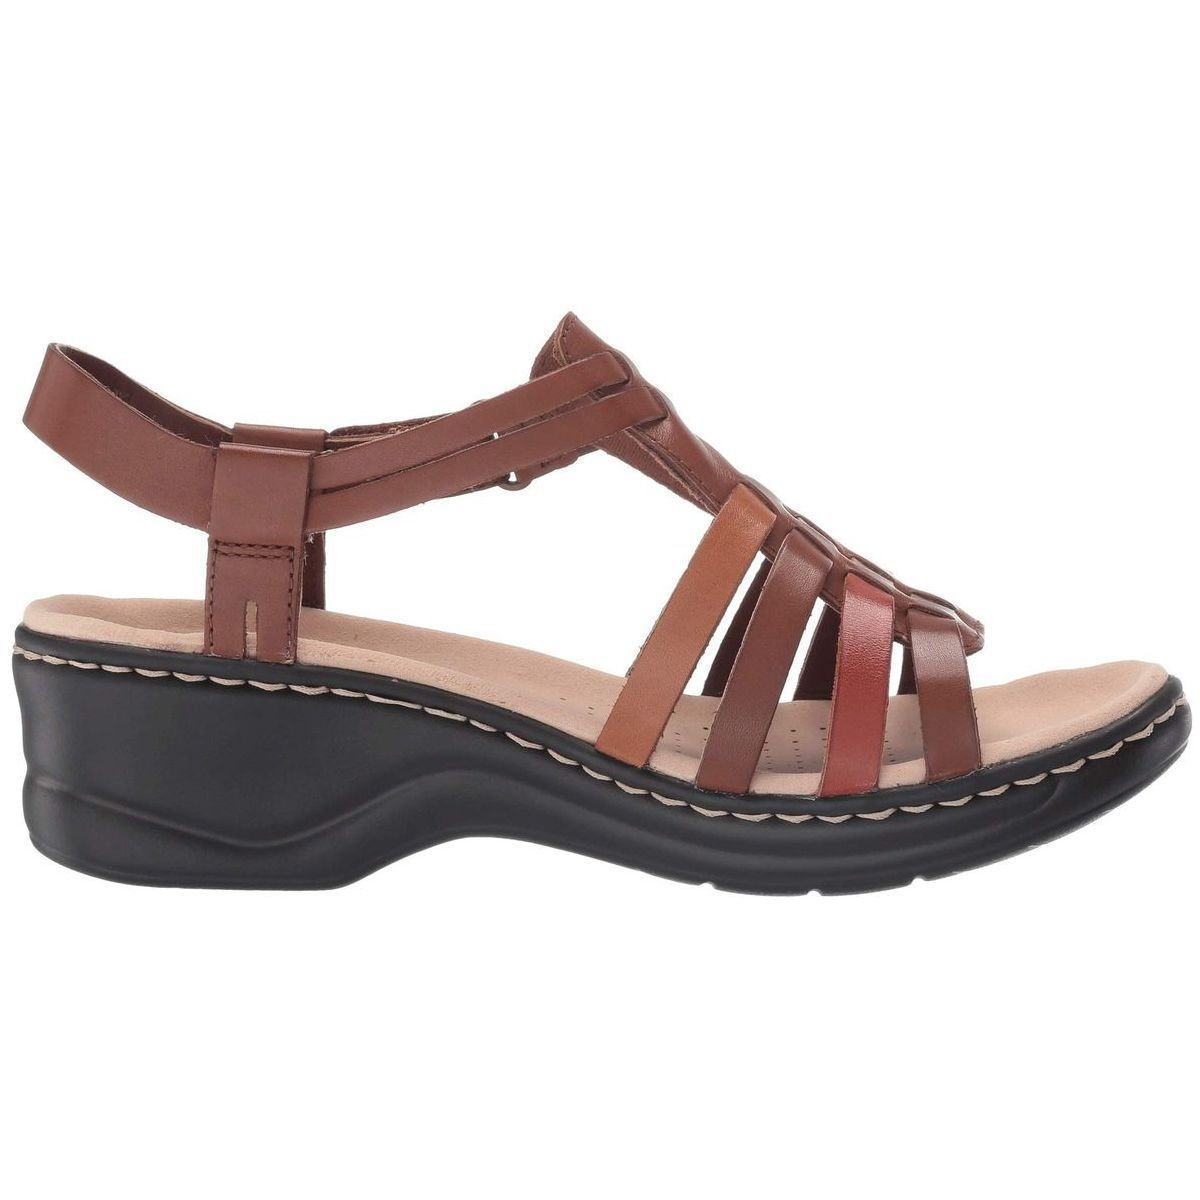 KANON LEXI BRIDGE:MARRON/CUIR/CUIR/CAOUTCHOUC/Tan